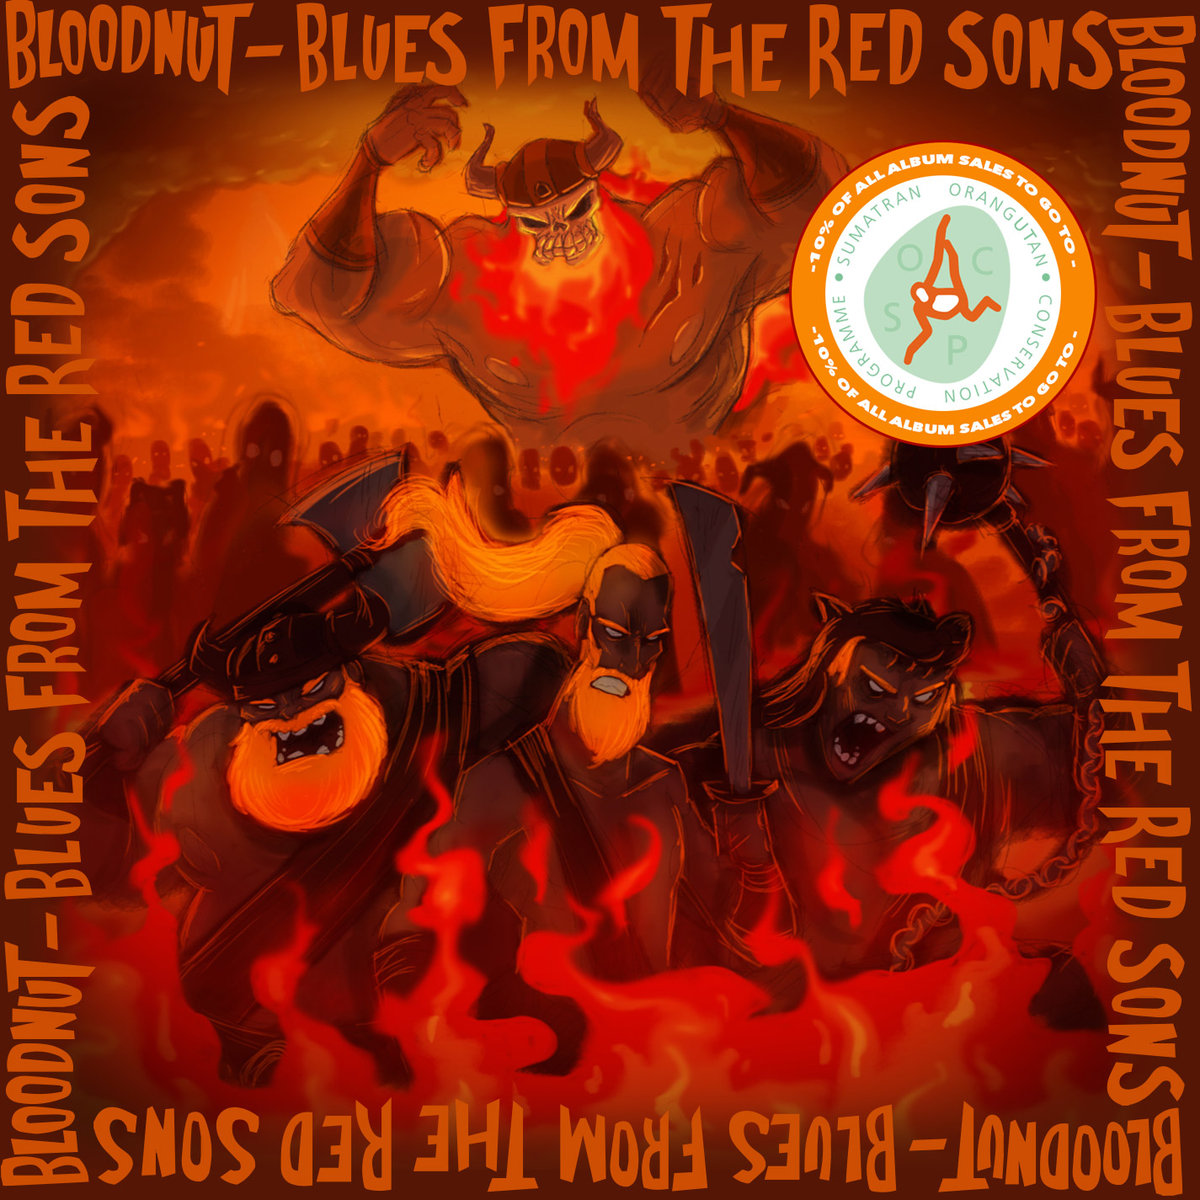 Blues From The Red Sons<br/> by Bloodnut